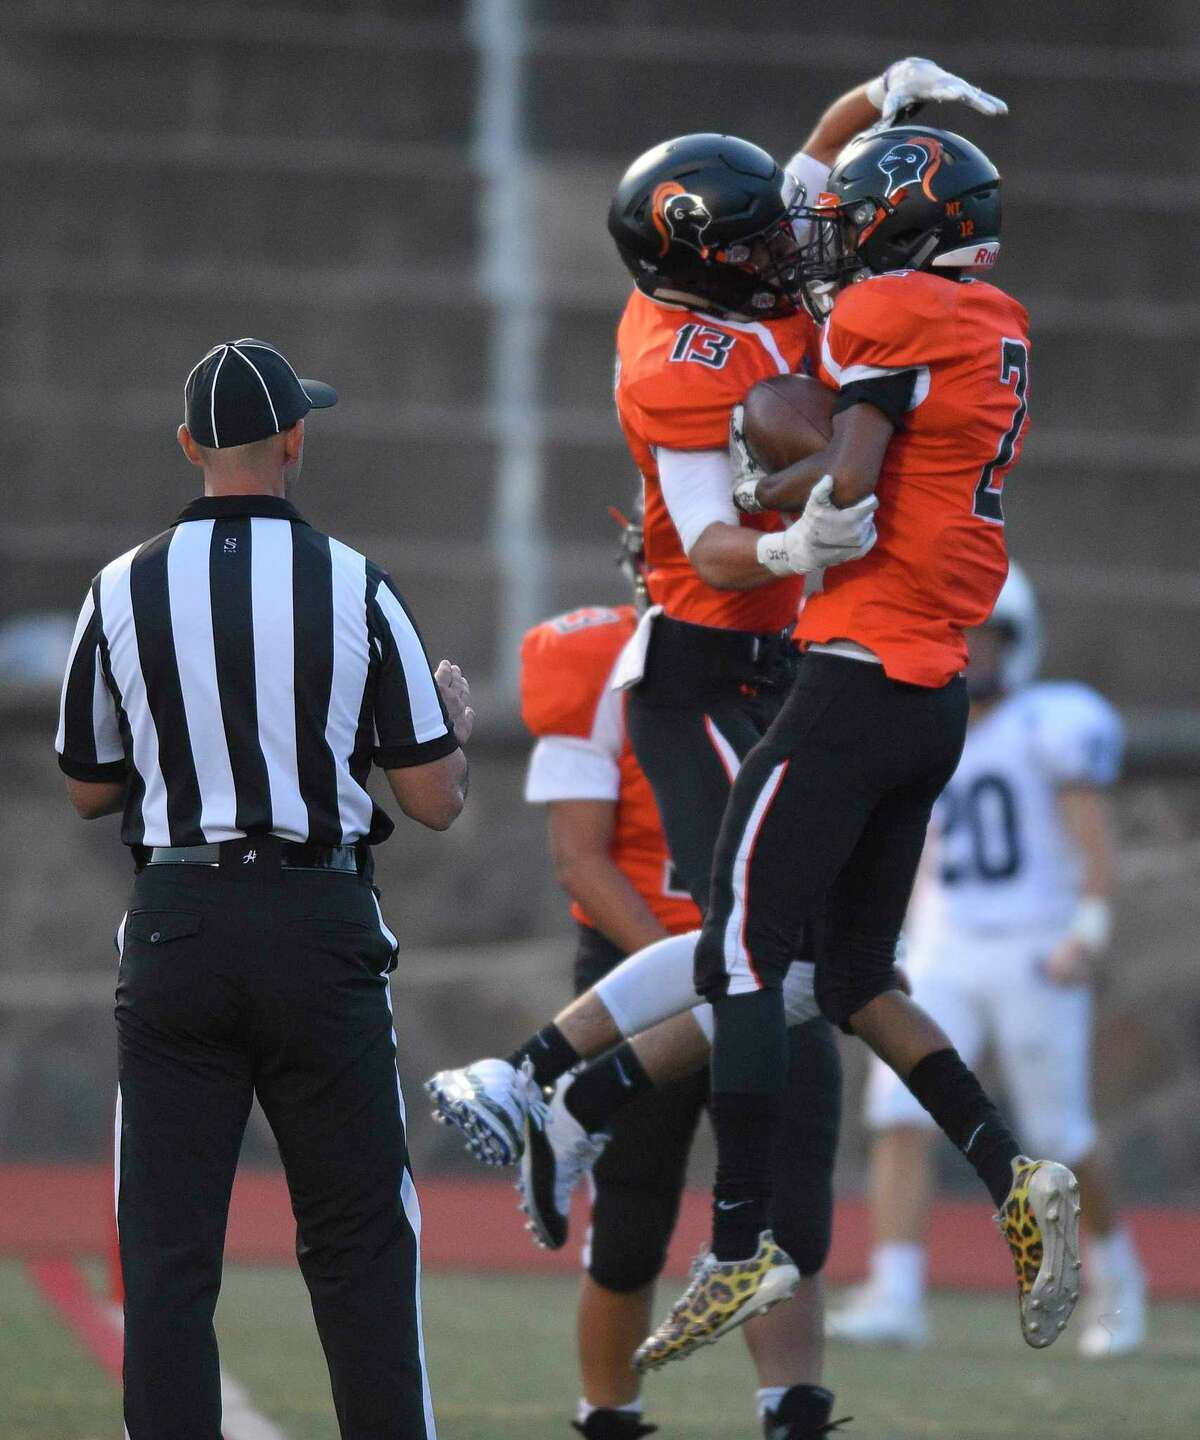 Stamford's Tyriq Deveaux (2) celebrates his touchdown against Staples in the first quarter on Friday.